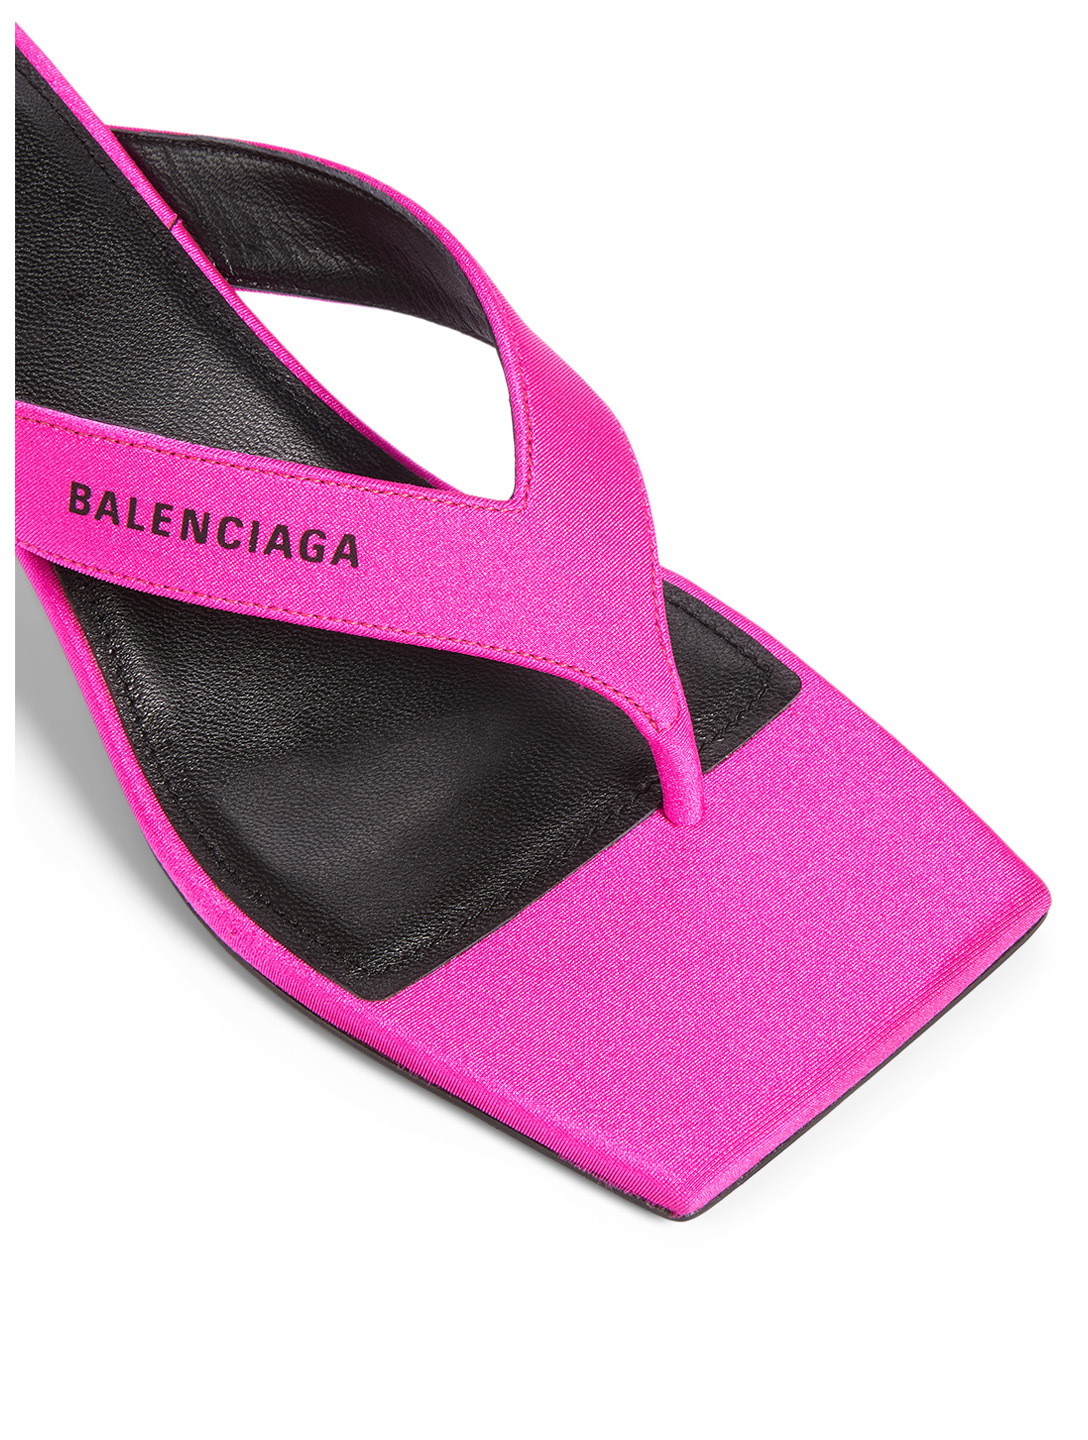 BALENCIAGA Double Square Spandex Heeled Flip-Flop Sandals Women's Pink